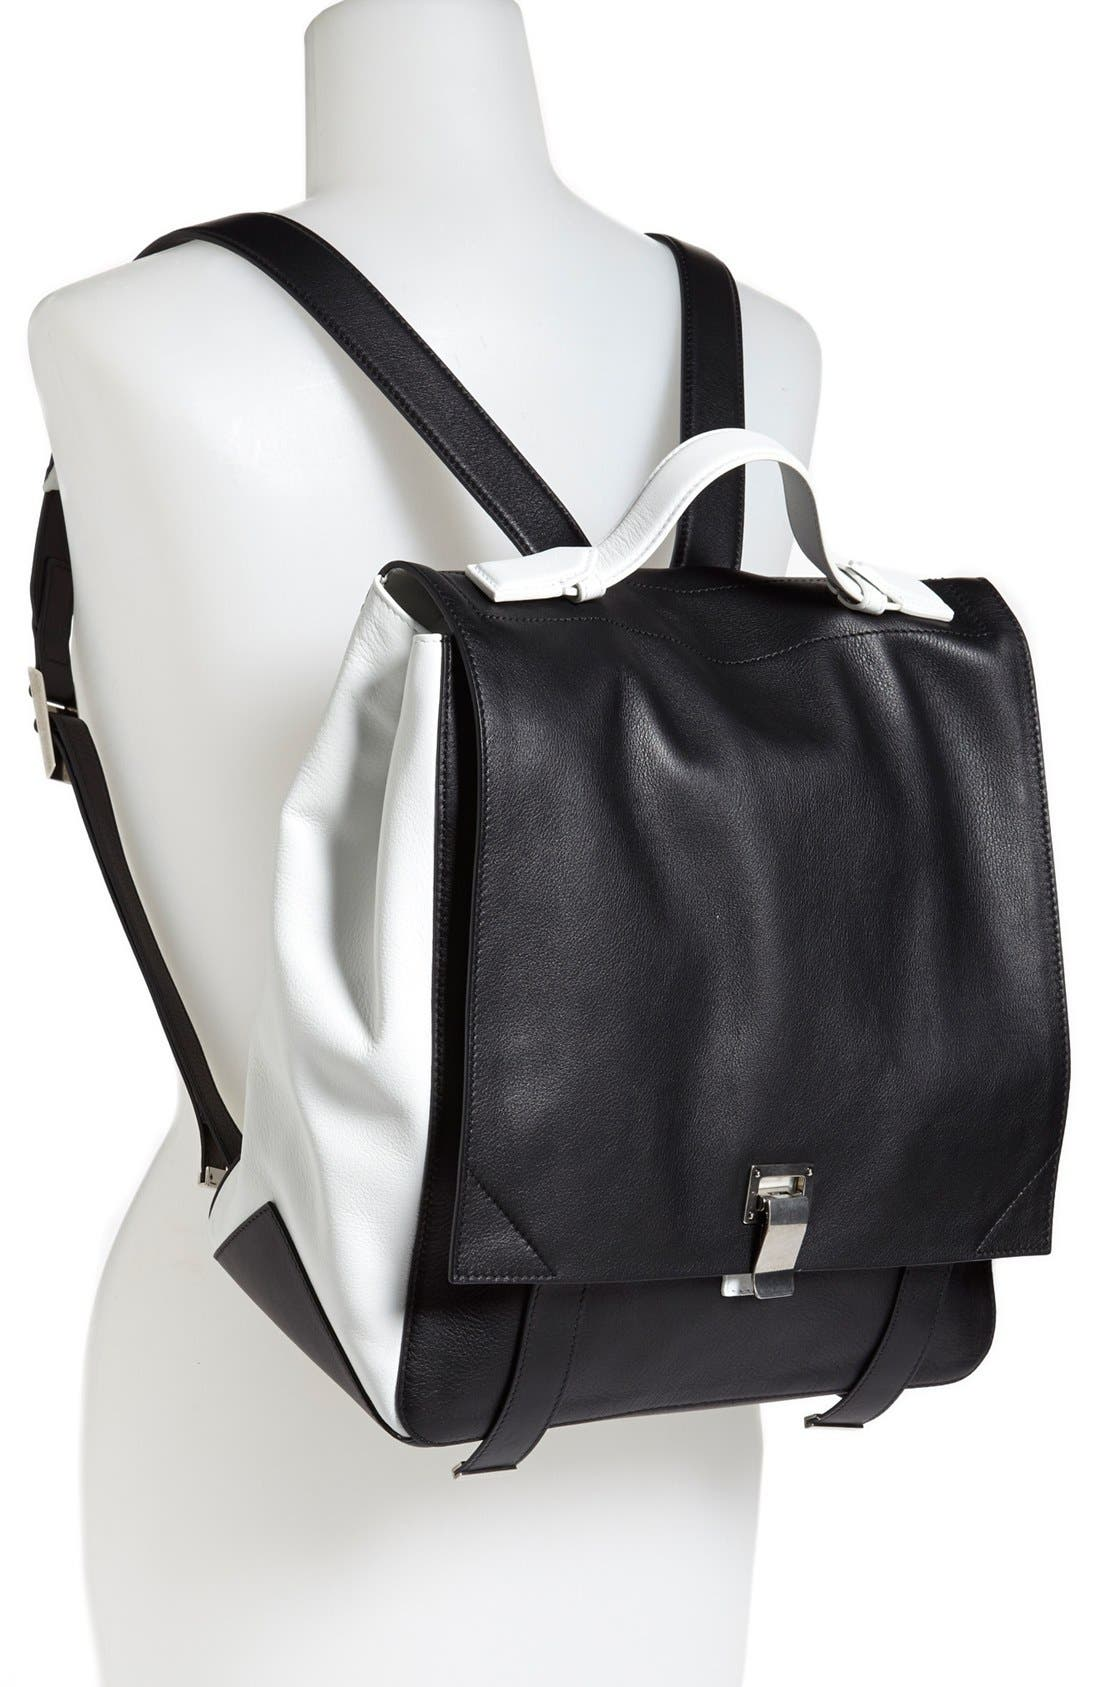 PROENZA SCHOULER, Calfskin Leather Backpack, Alternate thumbnail 2, color, 010